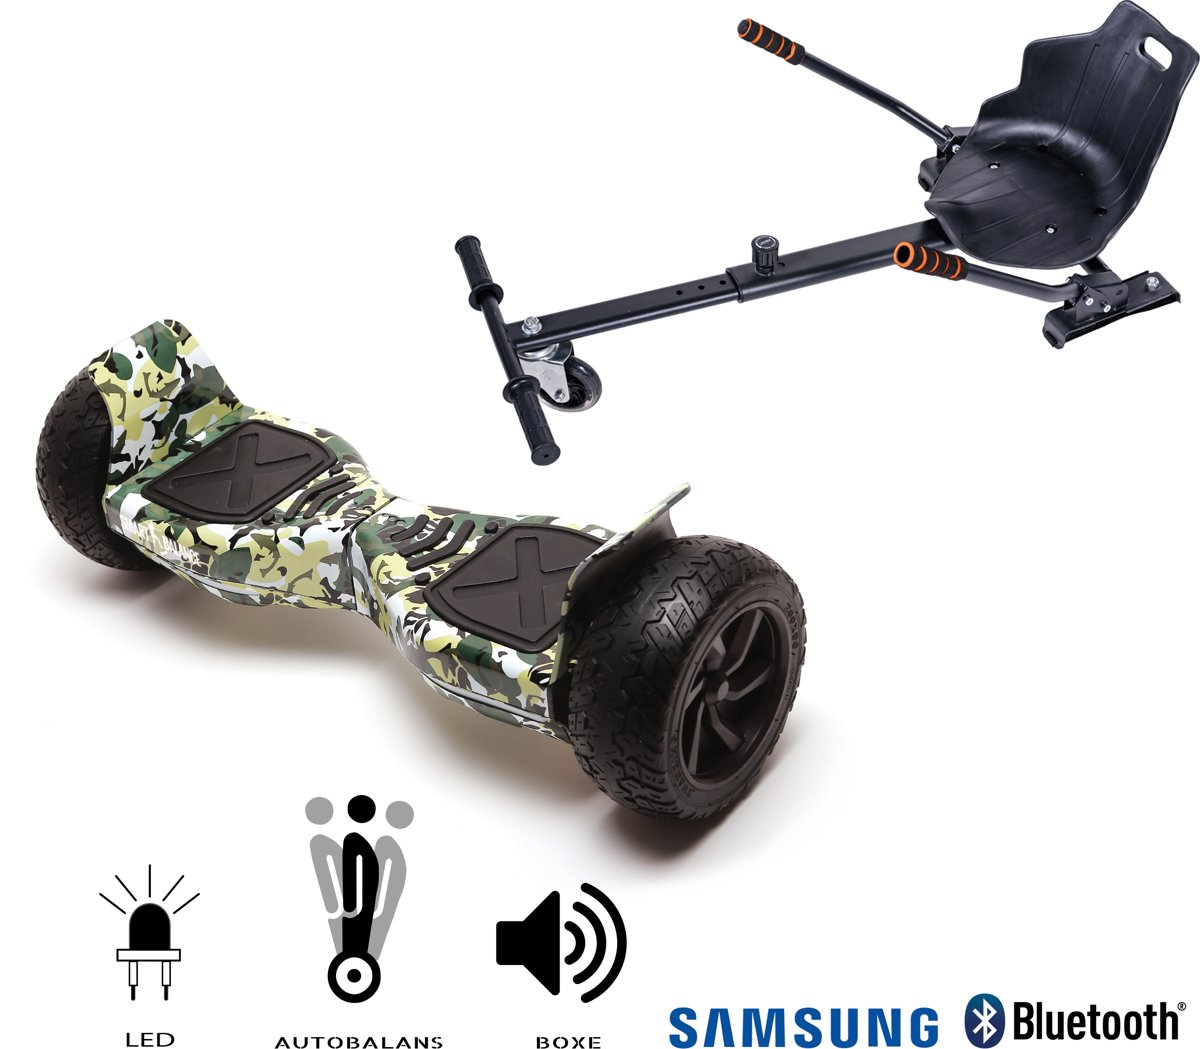 SMART BALANCE Paquet Hoverboard Hummer CAMOUFLAGE+ Hoverseat - 8.5 pouces, Bluetooth